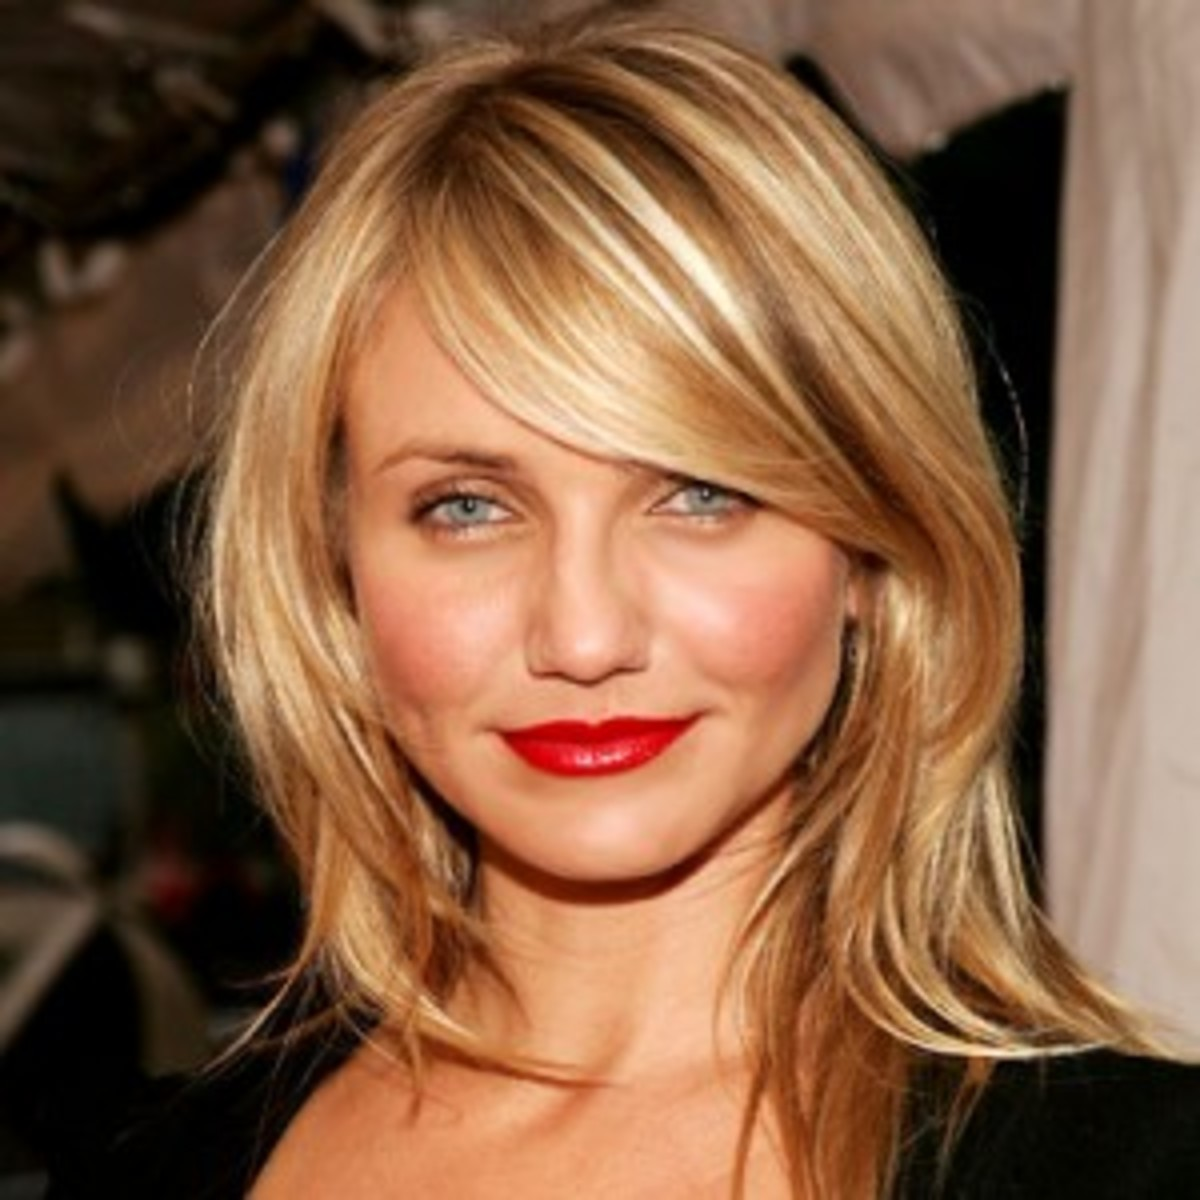 Woman's guide: Best hairstyles / haircuts for round faces with straight, wavy or curly hair